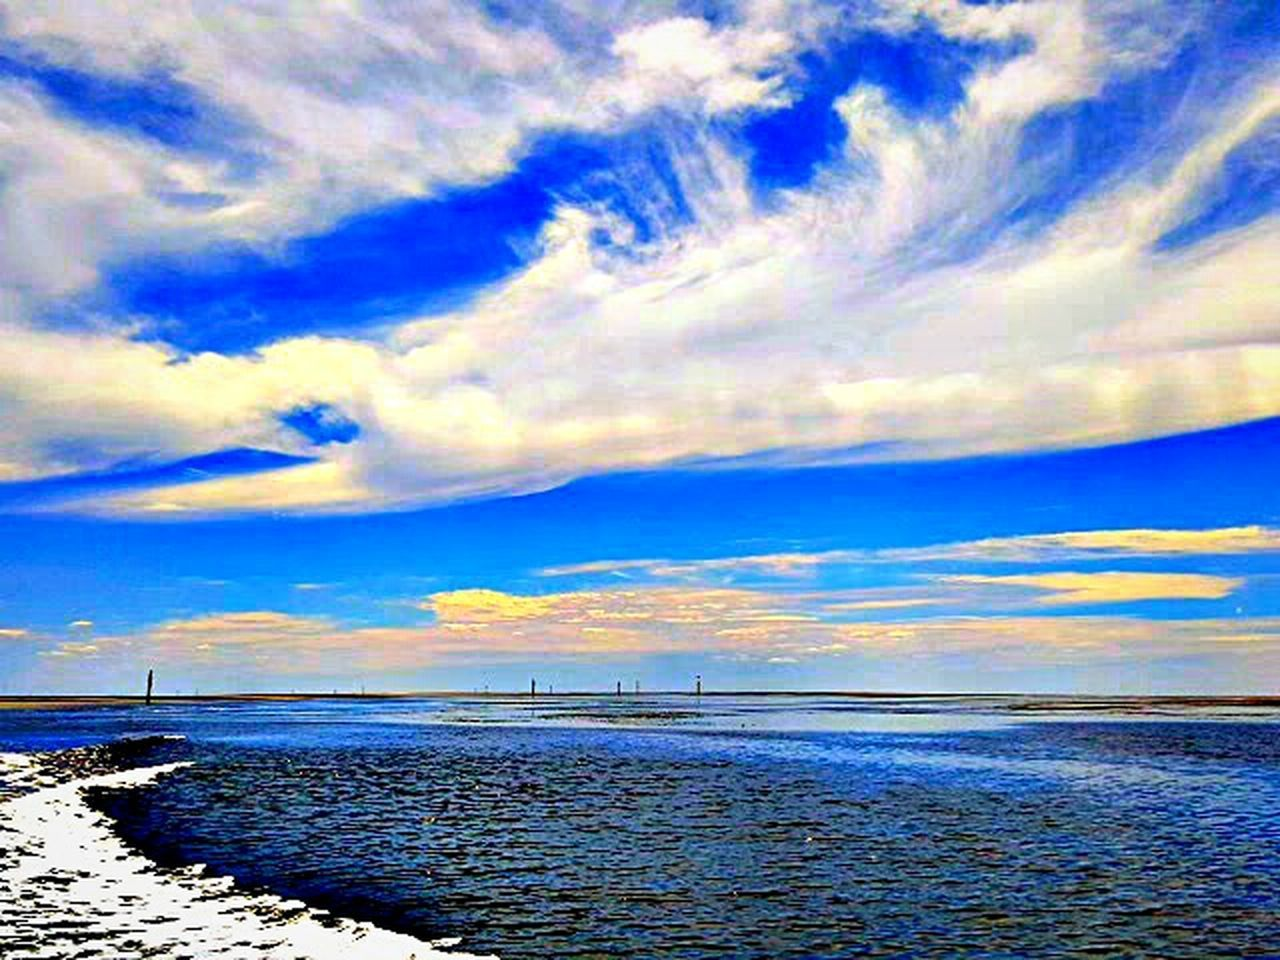 sea, cloud - sky, scenics, horizon over water, water, sky, tranquility, tranquil scene, beach, beauty in nature, nature, outdoors, blue, no people, sunset, travel destinations, horizon, day